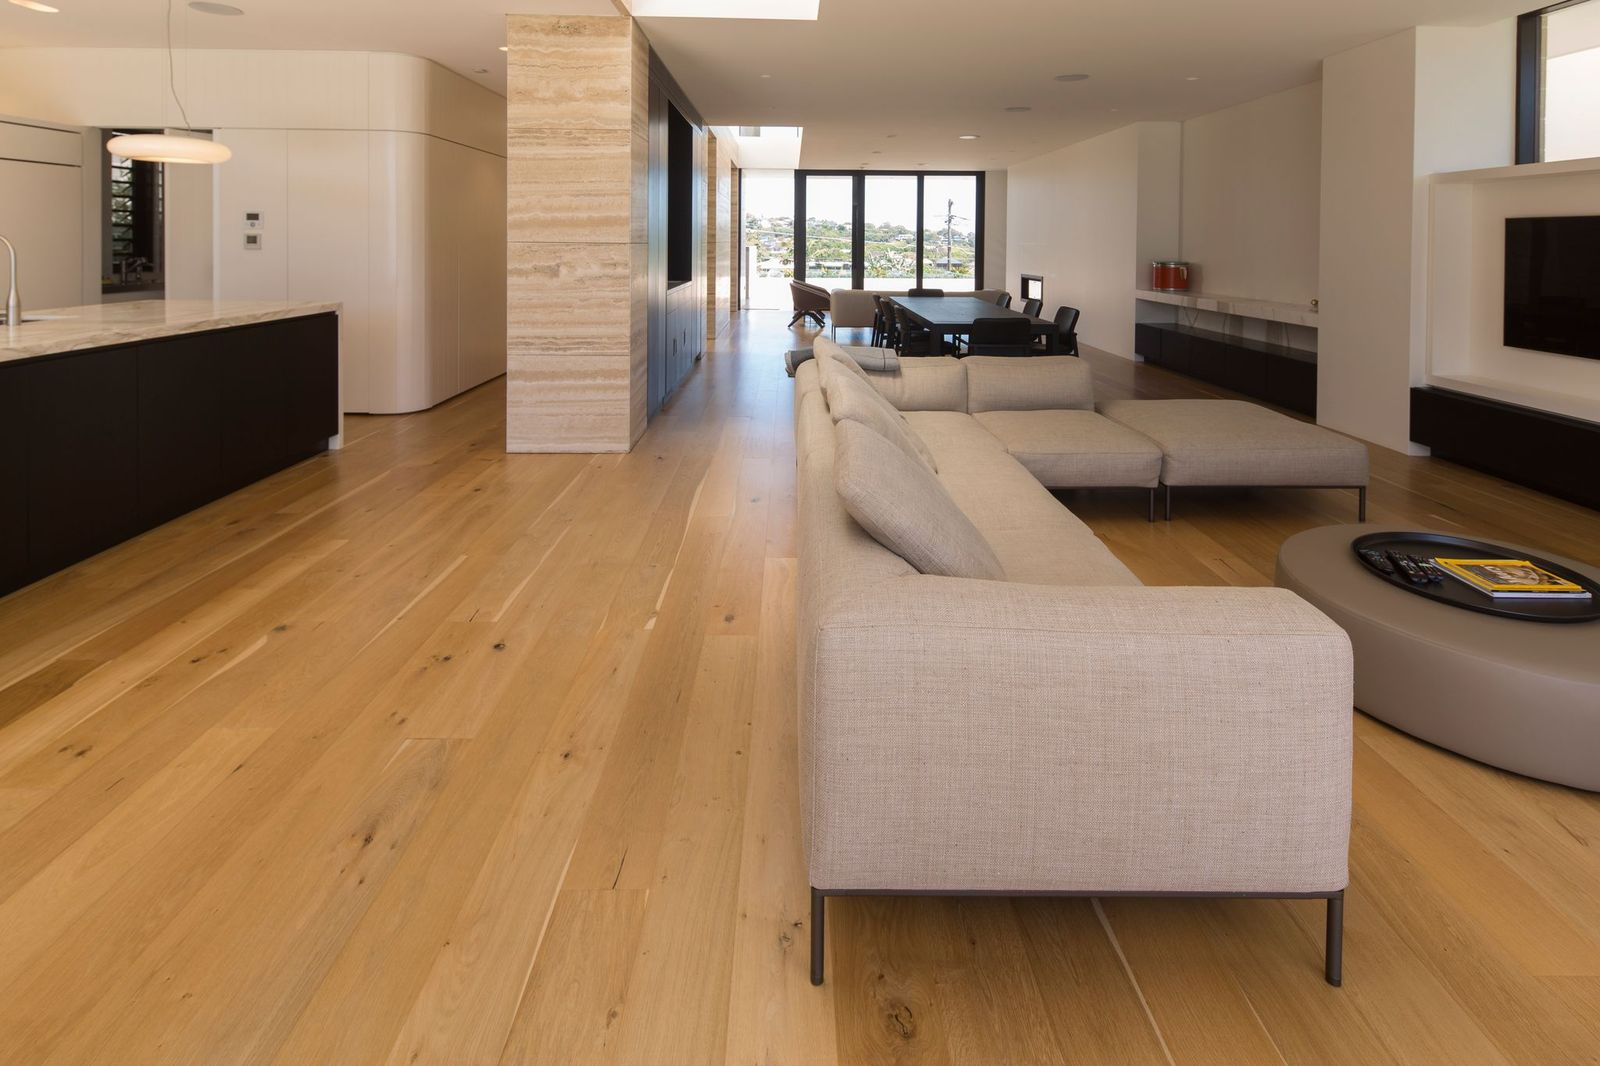 Trusted experts in ethically sourced timber floors.